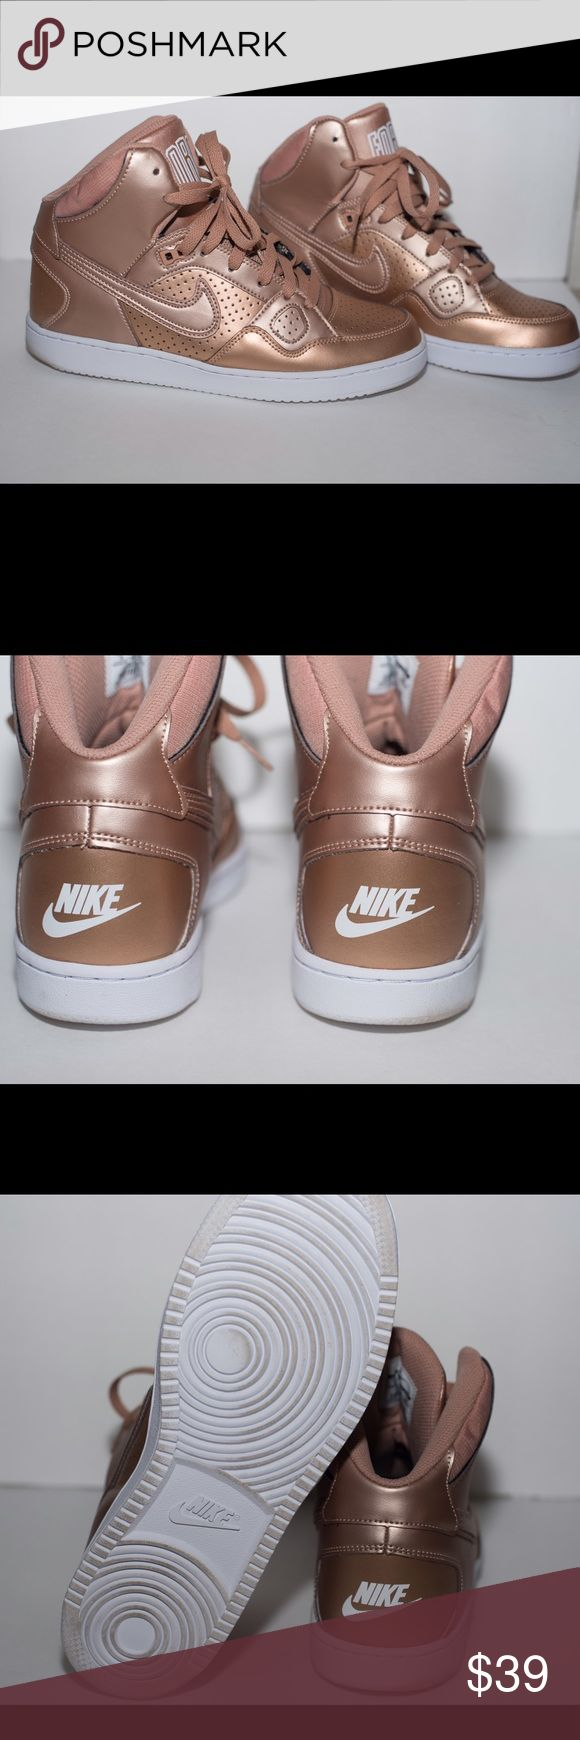 Nike Women's Son of Force Mid Beautiful bronze color Air Force 1s that will turn any outfit into a fashion statement. Nike Shoes Athletic Shoes